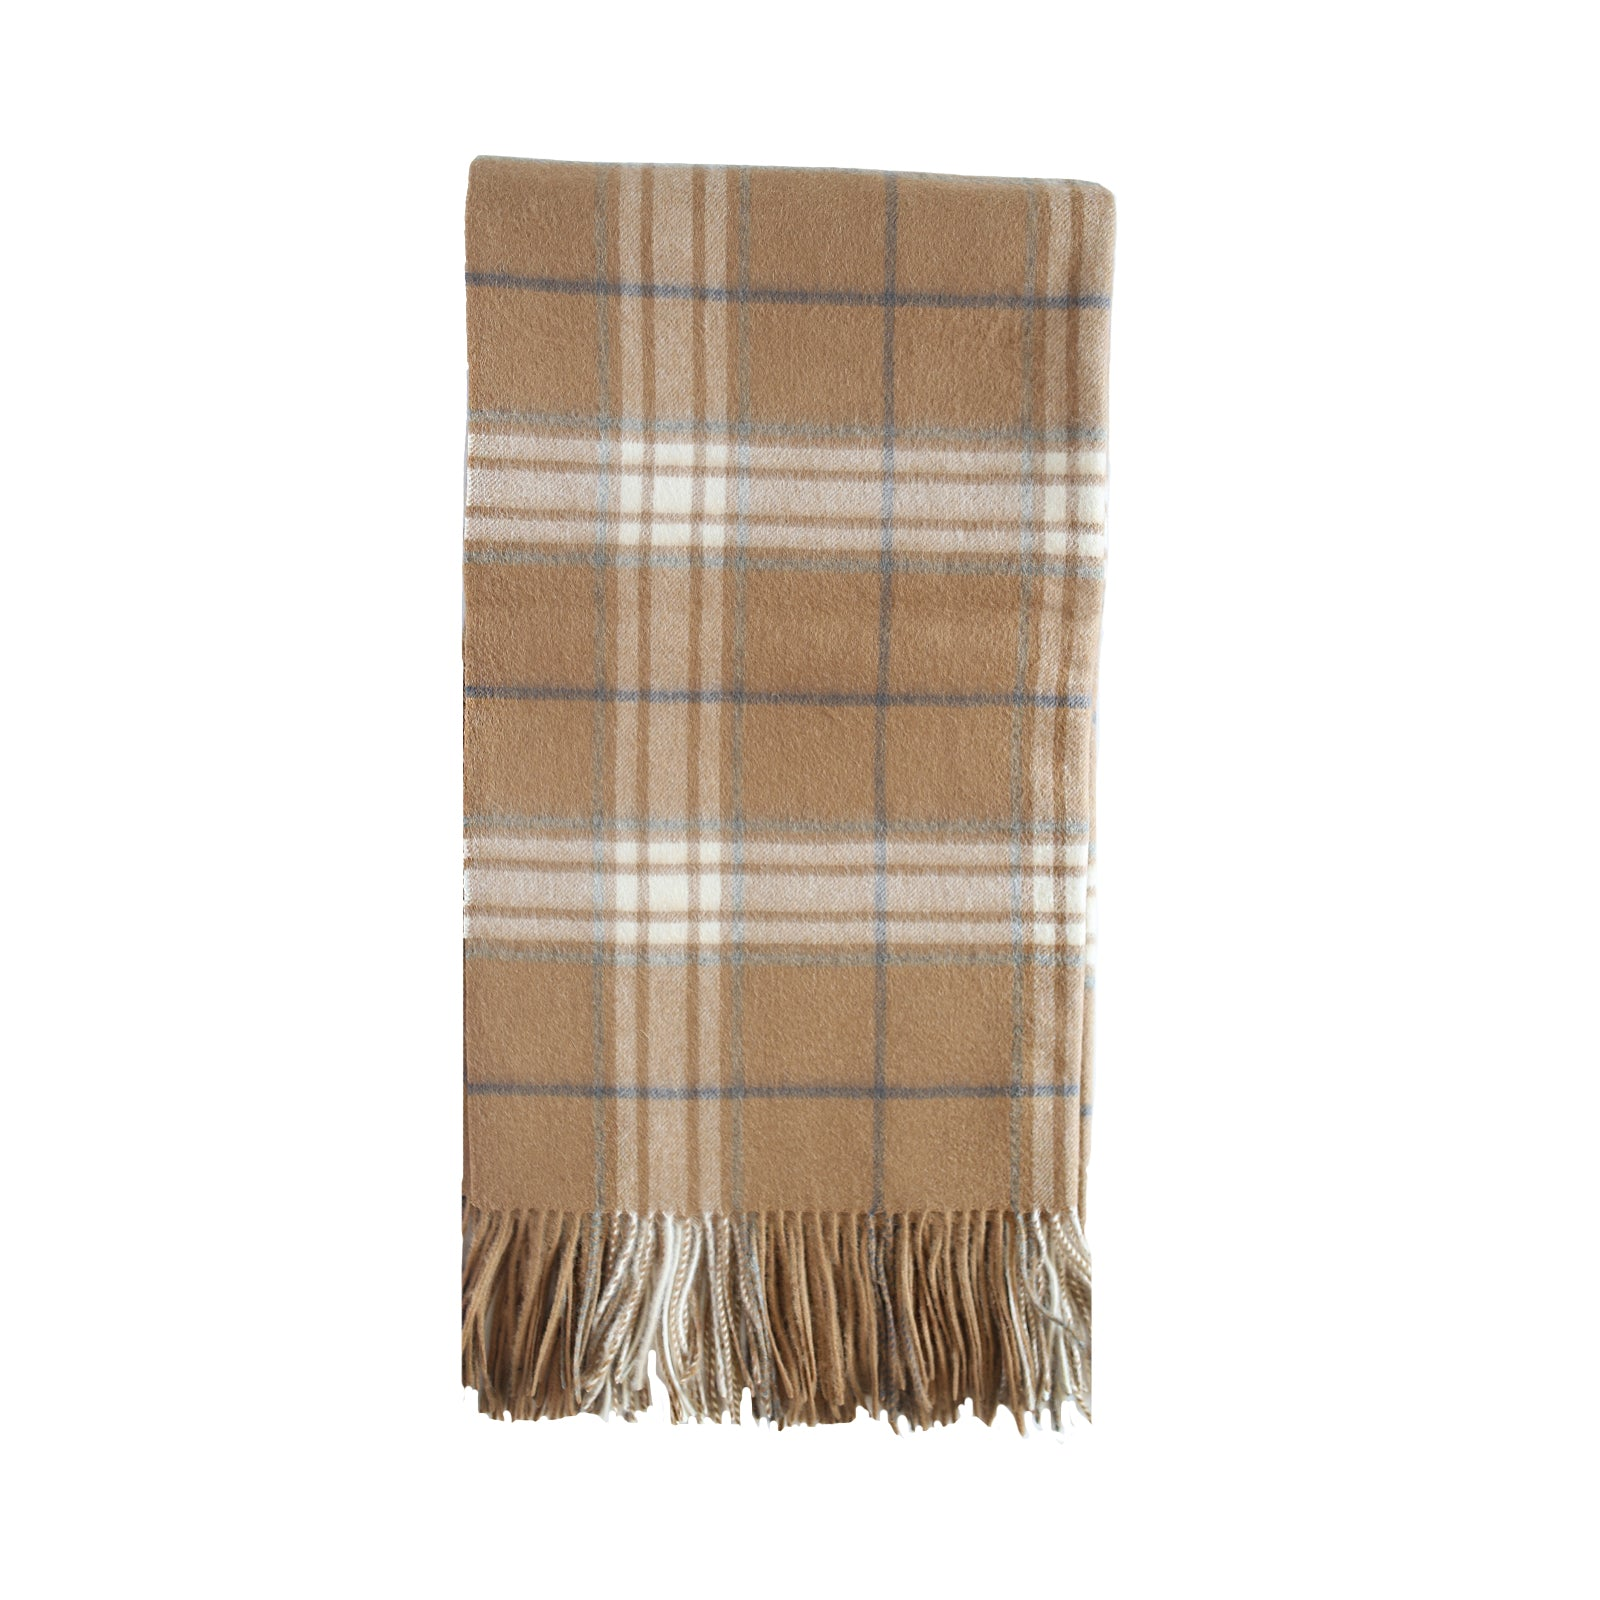 Cashmere Plaid Throw in Camel